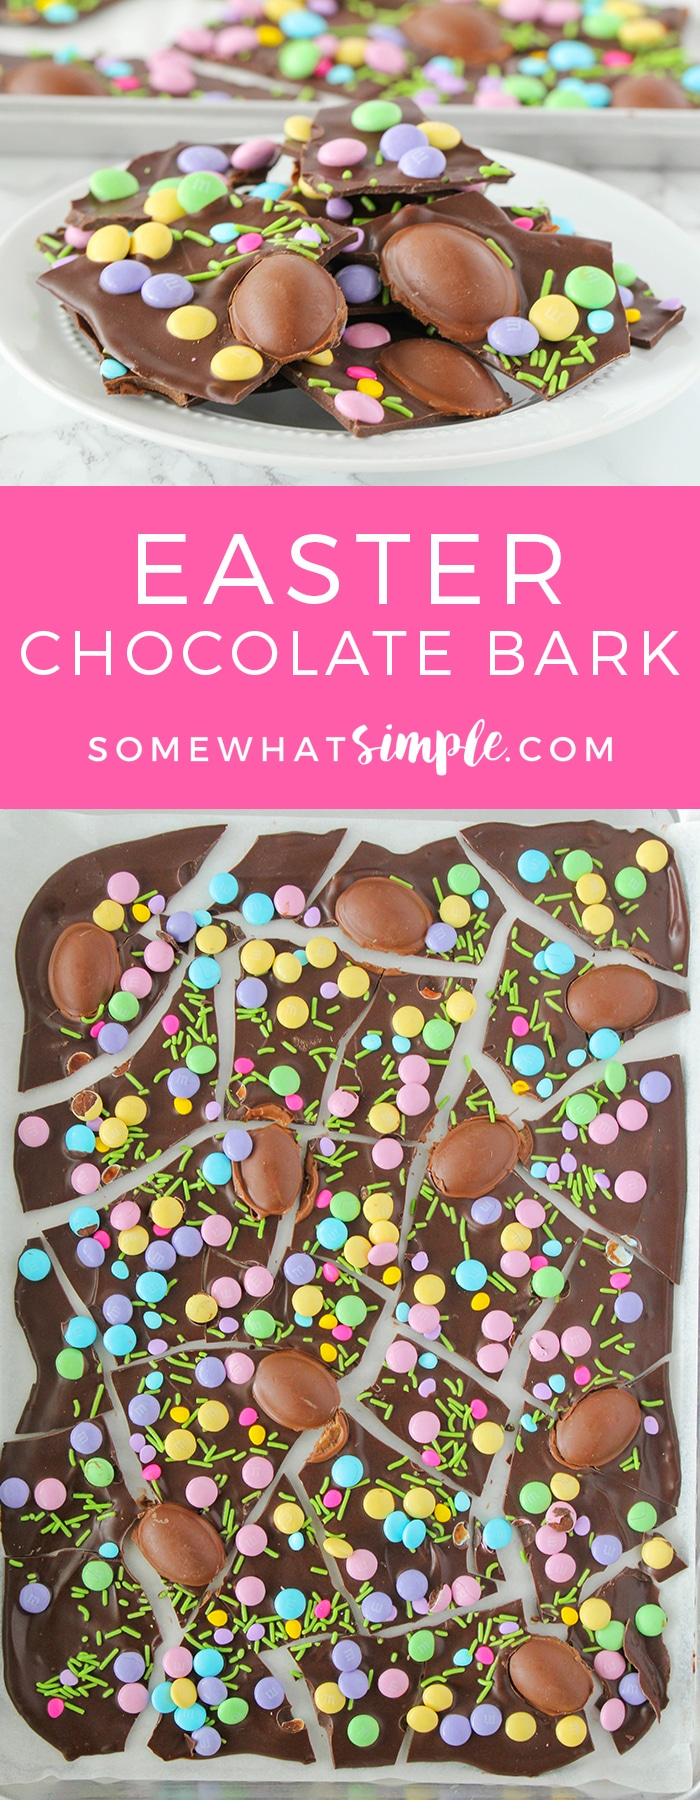 If you've never made chocolate bark before, you are in for a special treat! This chocolate bark recipe is not only super easy to make, it can also be customized to match any season or holiday of the year!